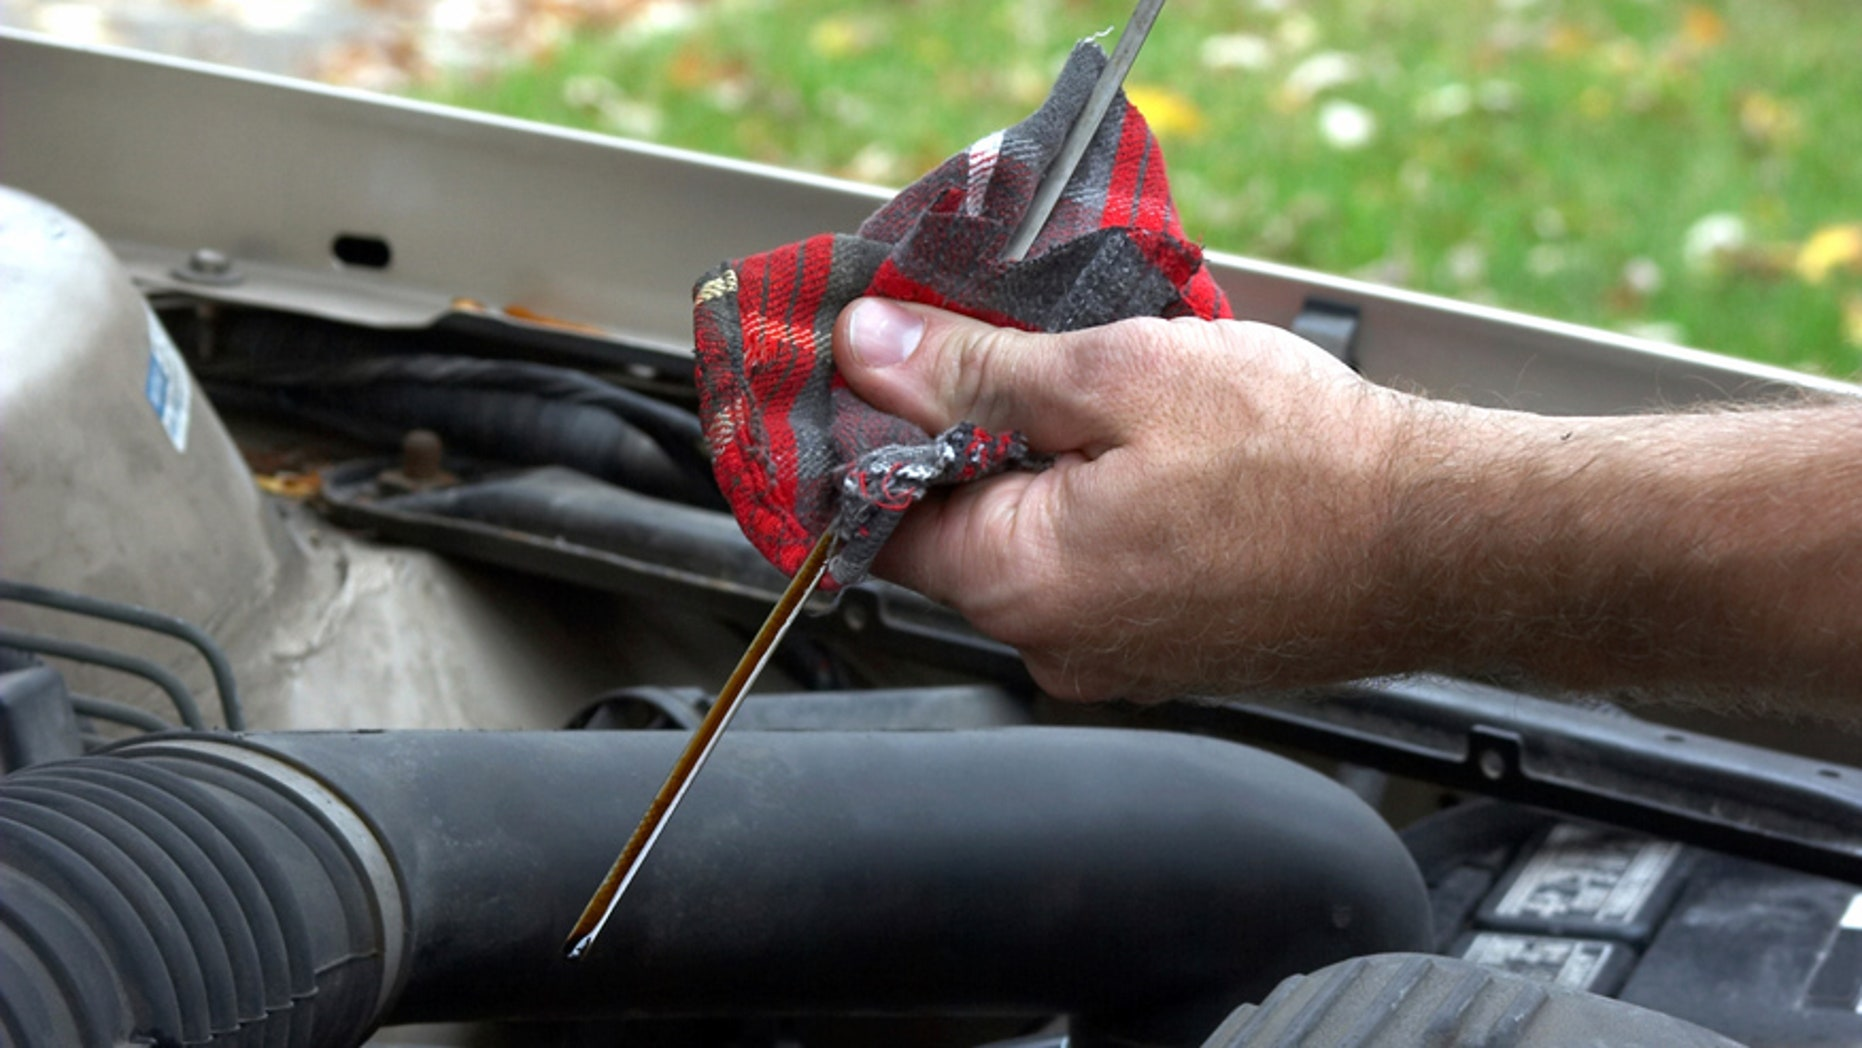 How to check your oil | Fox News